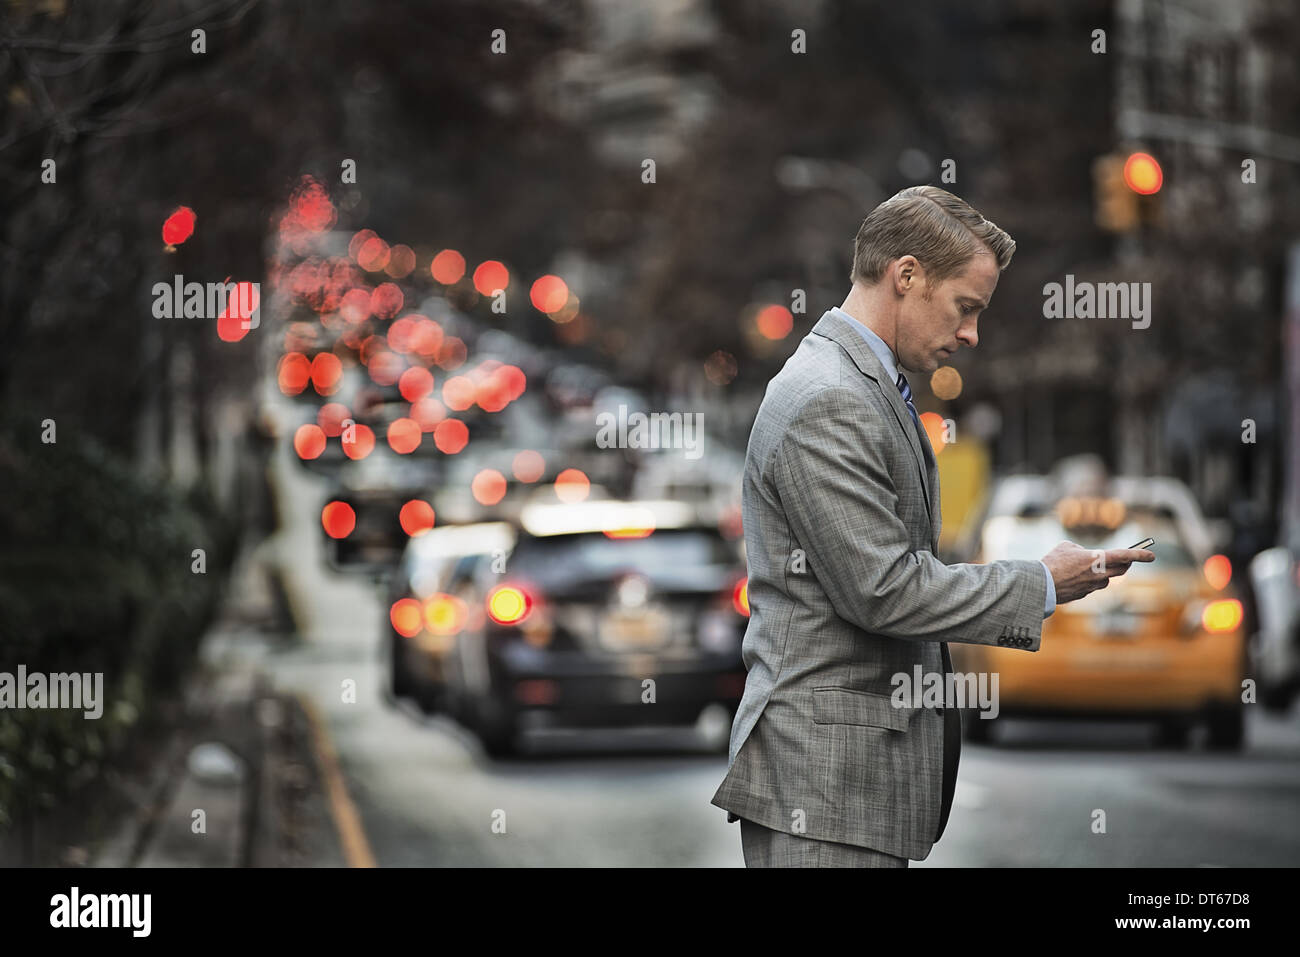 A man in a suit checking his cell phone, standing on a busy street at dusk. Stock Photo